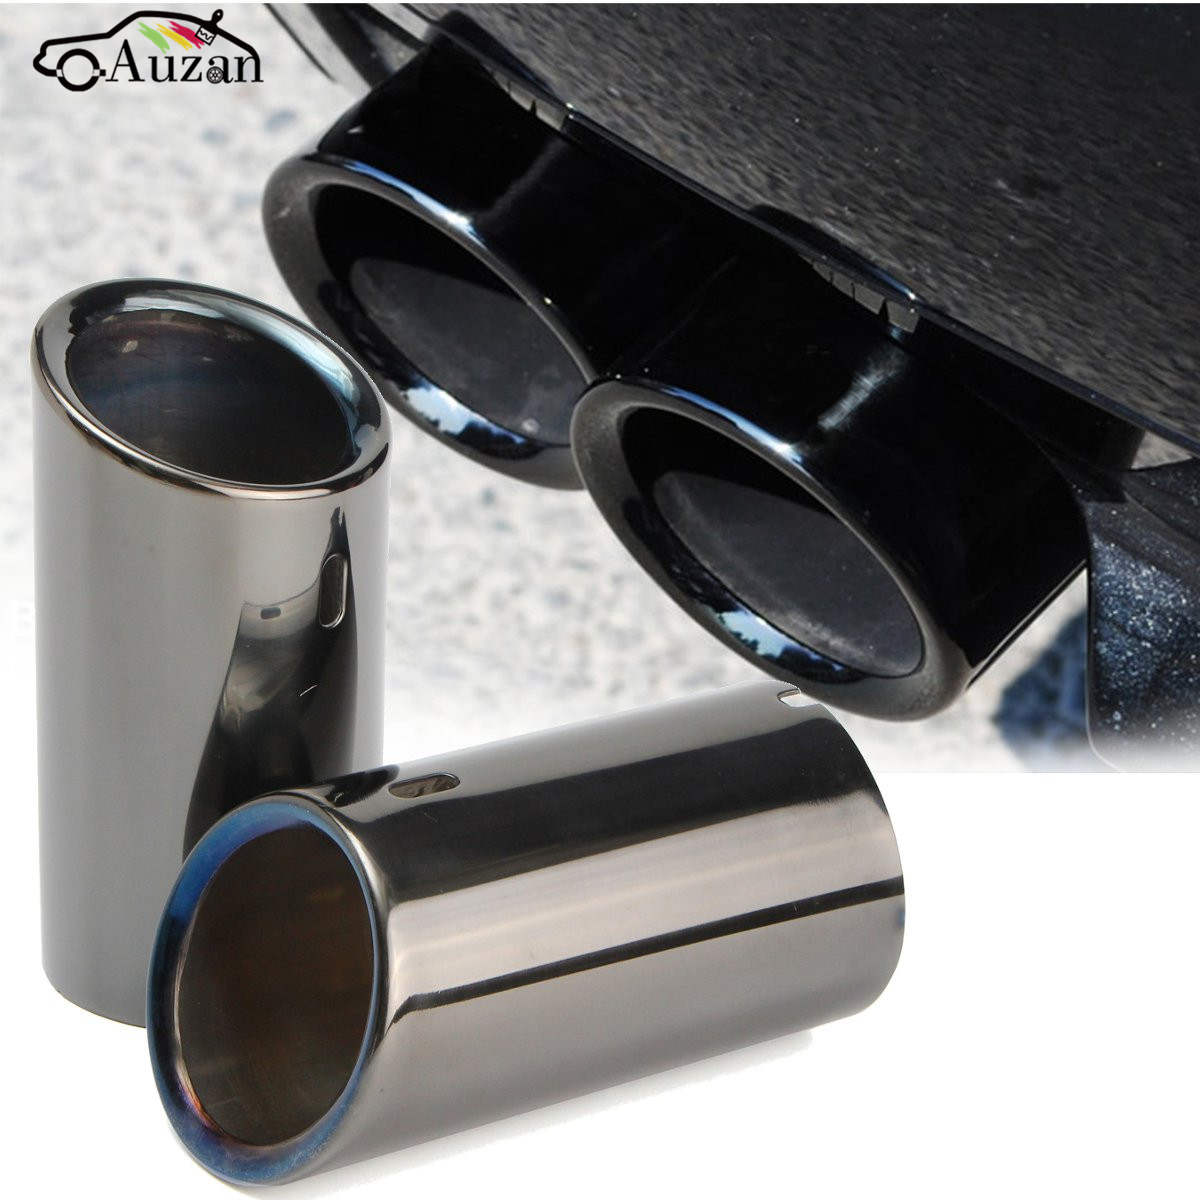 Pair Car Tail Exhaust Tip Pipes Titanium Black For BMW E90 E92 325 328i 3 Series 2006 - 2010 Stainless Steel